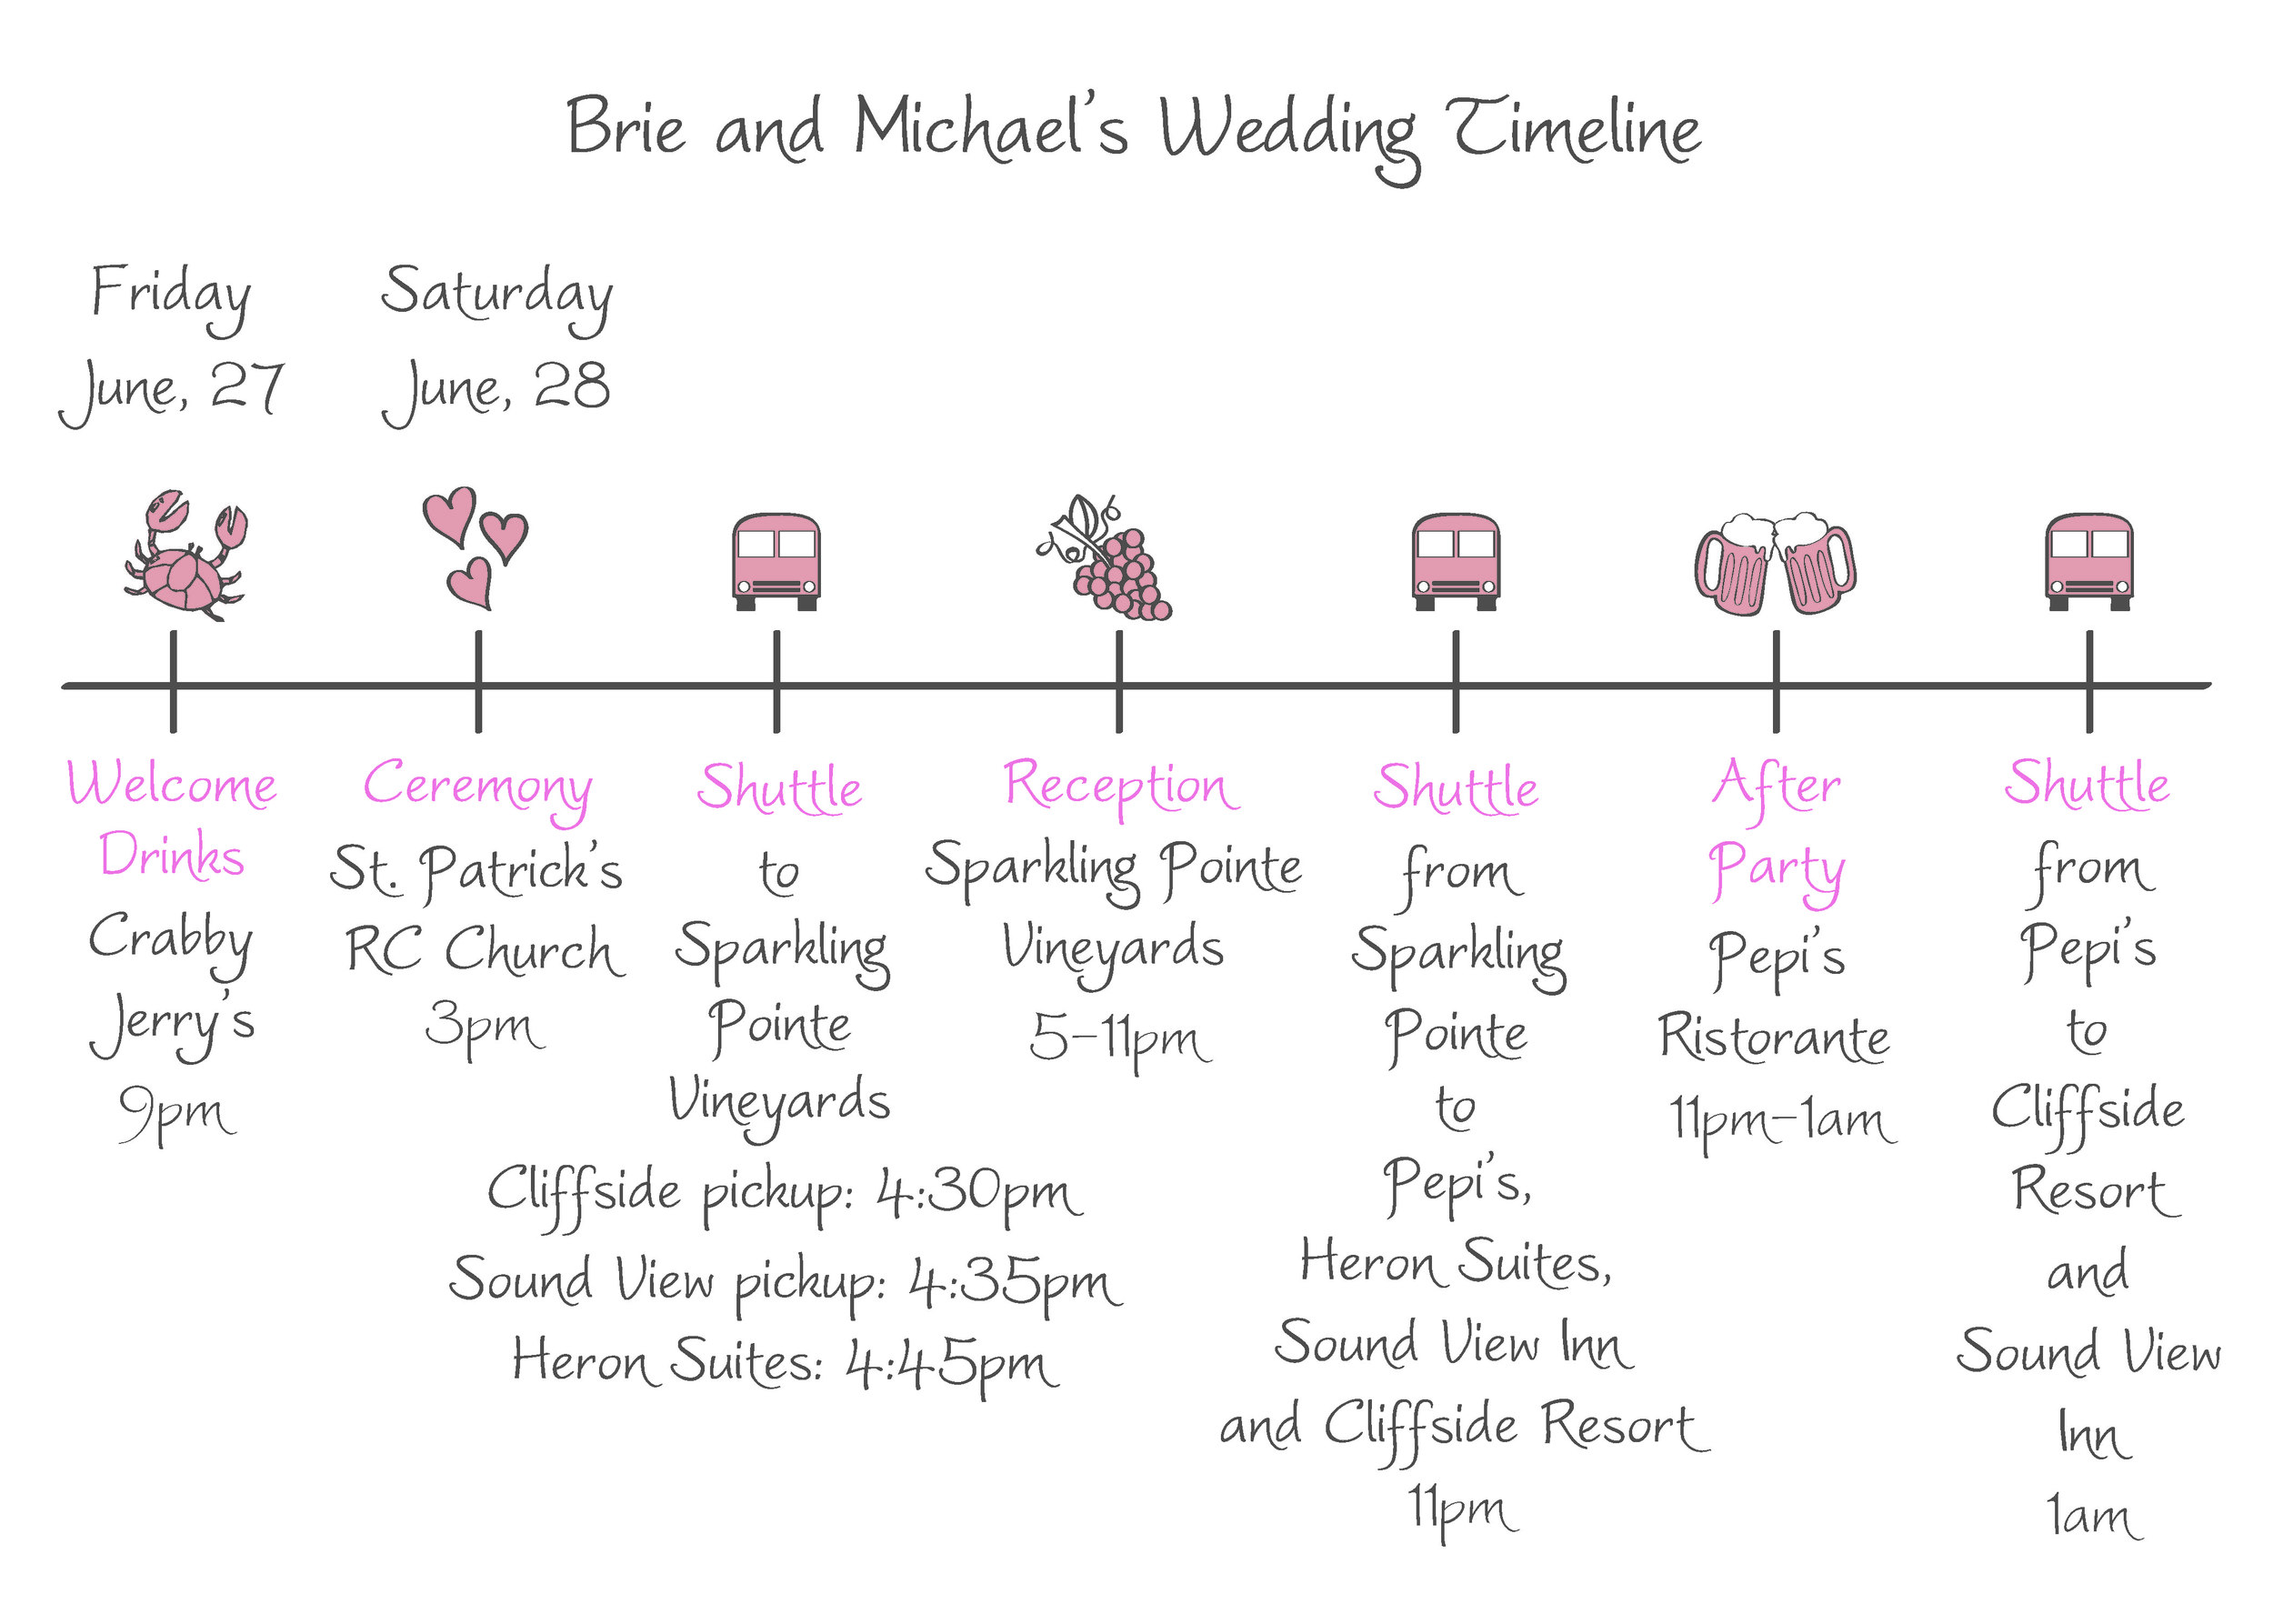 Wedding Timeline and Itinerary